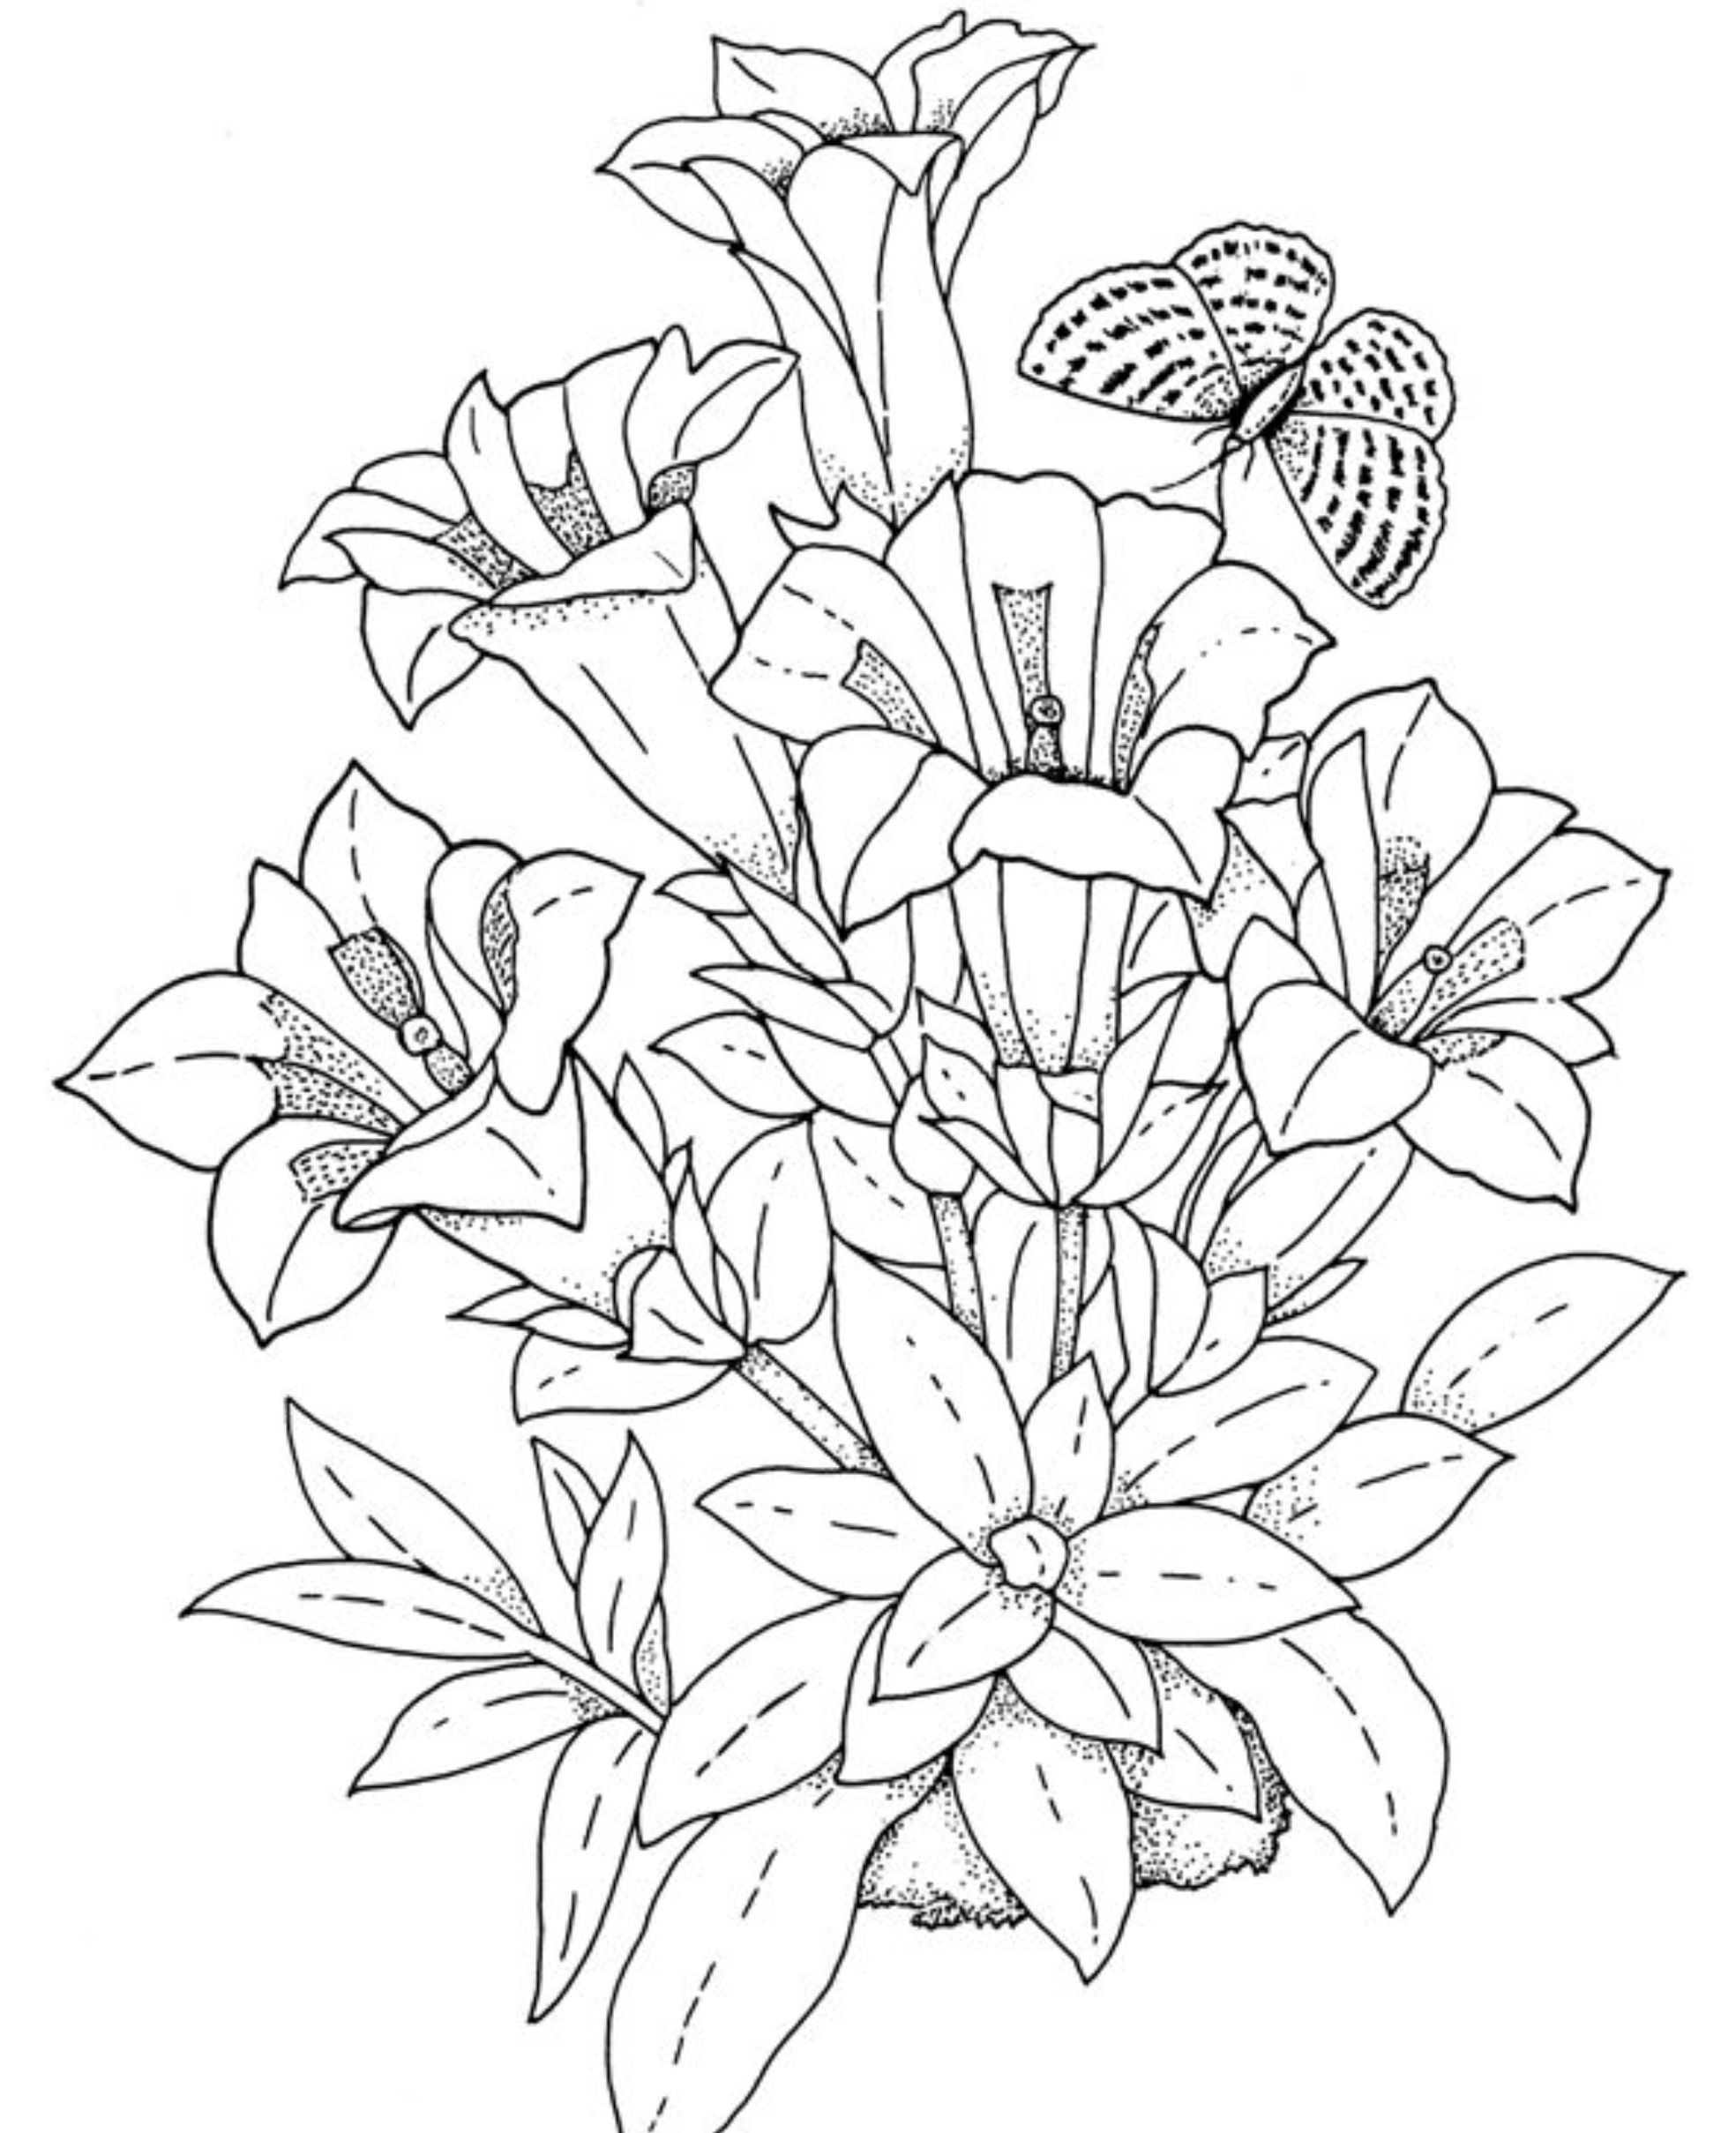 Realistic Nature Coloring Pages At Getcolorings